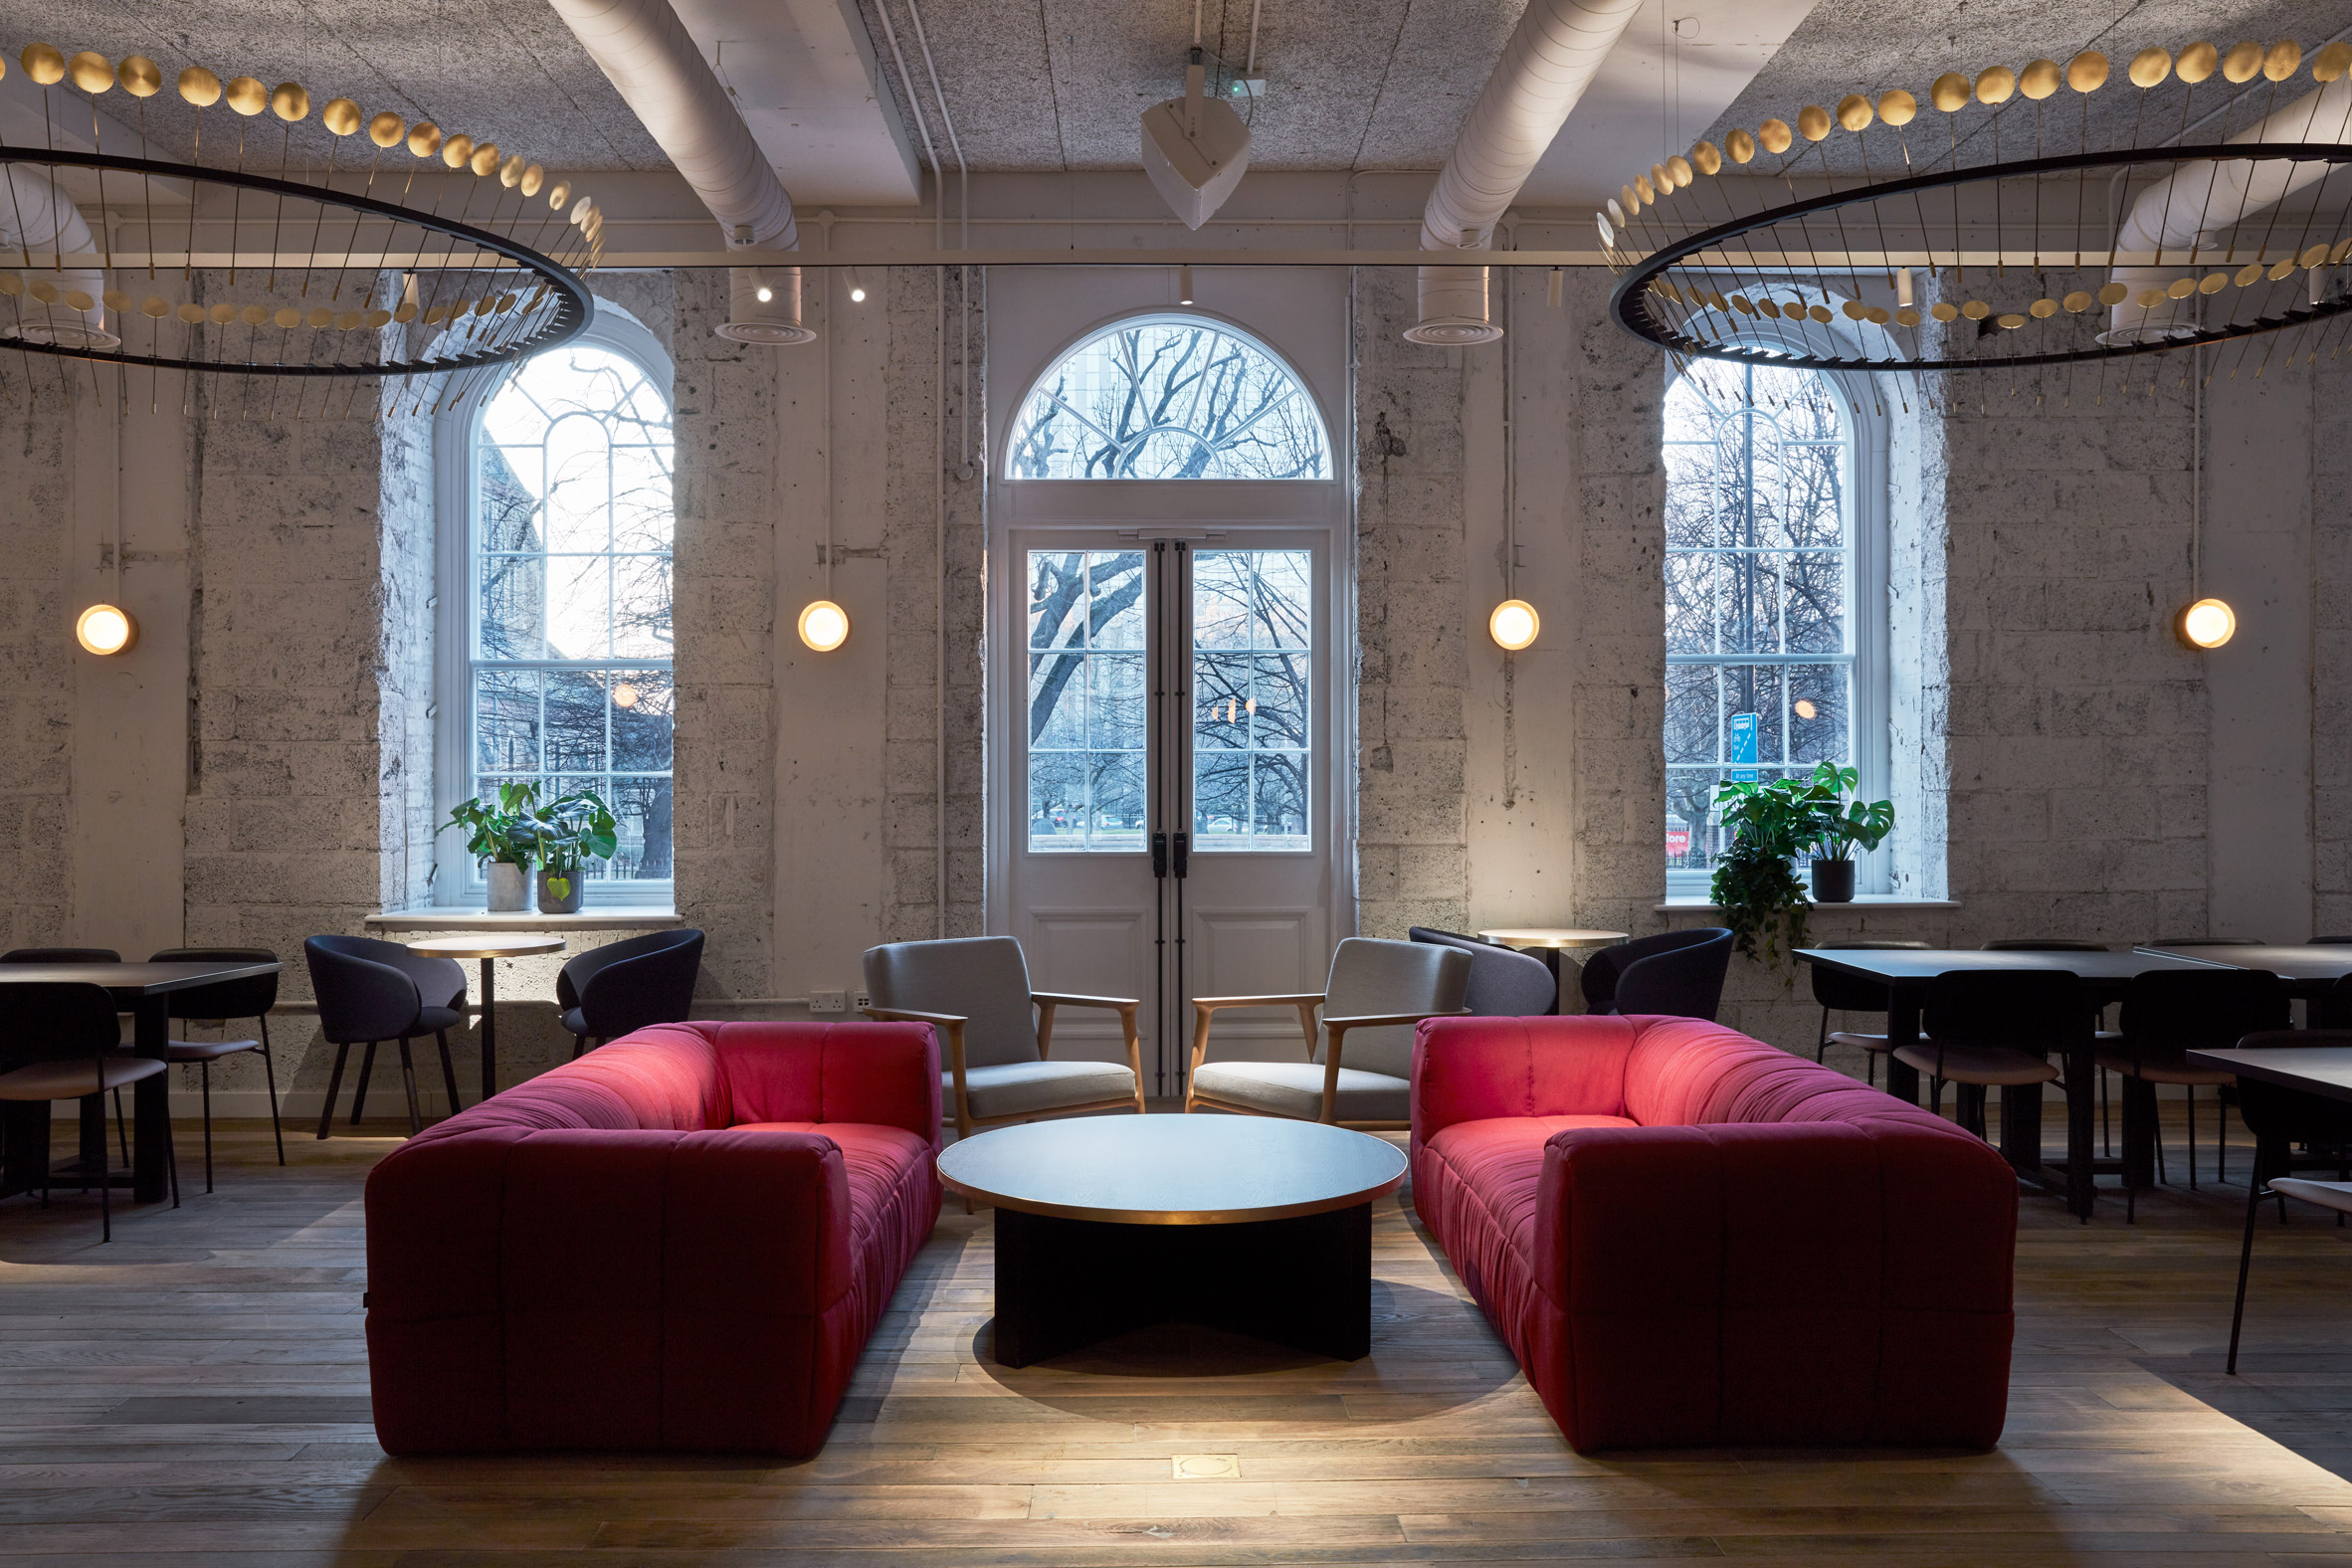 Interiors of Kindred co-working space, designed by Studioshaw